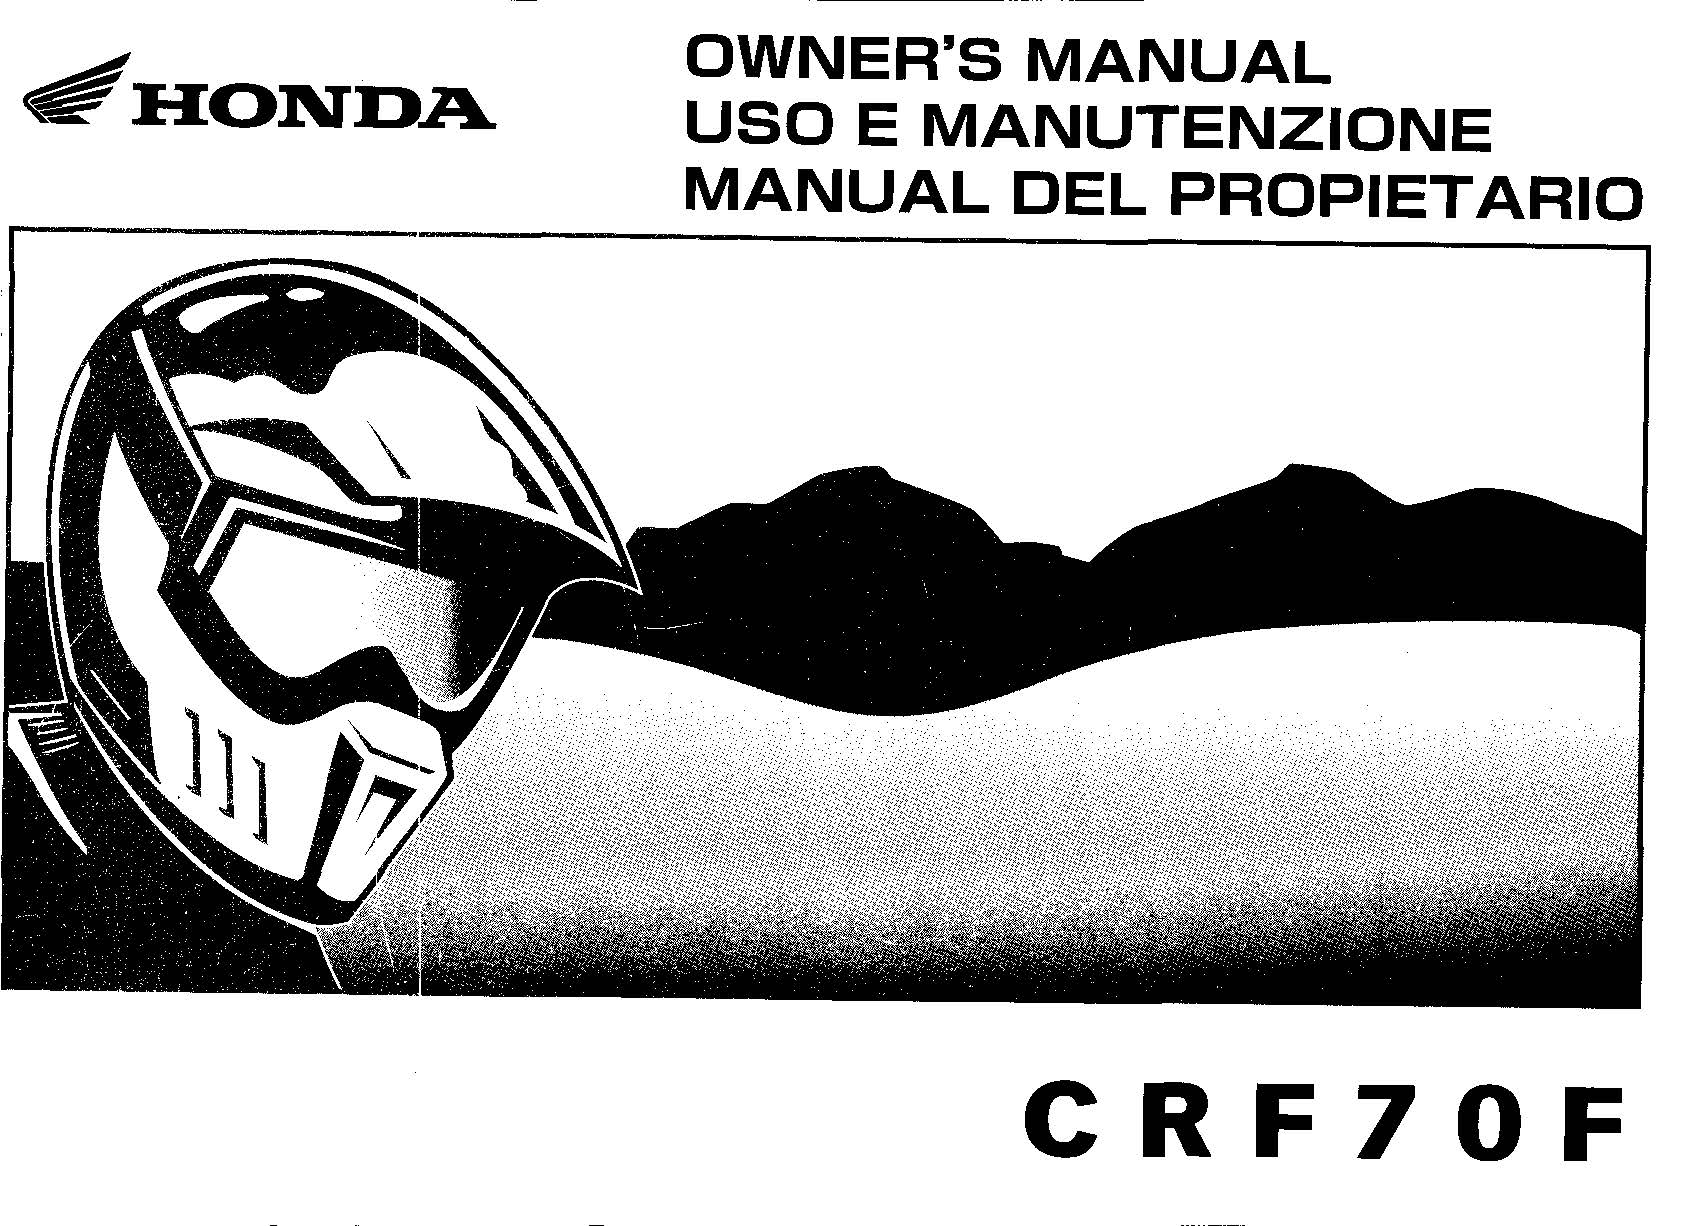 Owner's manual for Honda CRF70F (2007) multi